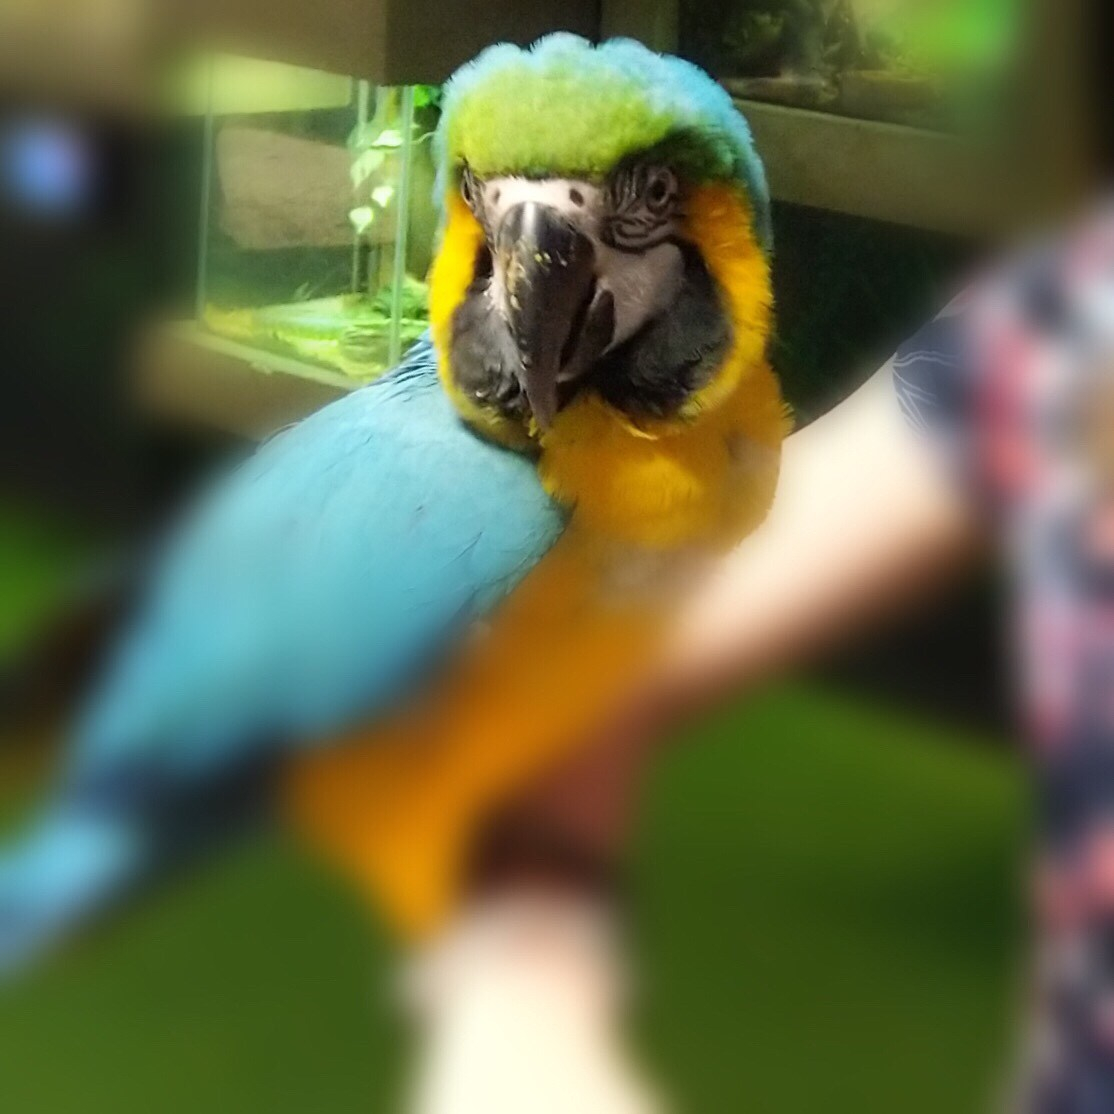 A colorful parrot on Veronica's arm; the parrot's head is clear but the rest of the image is blurry.